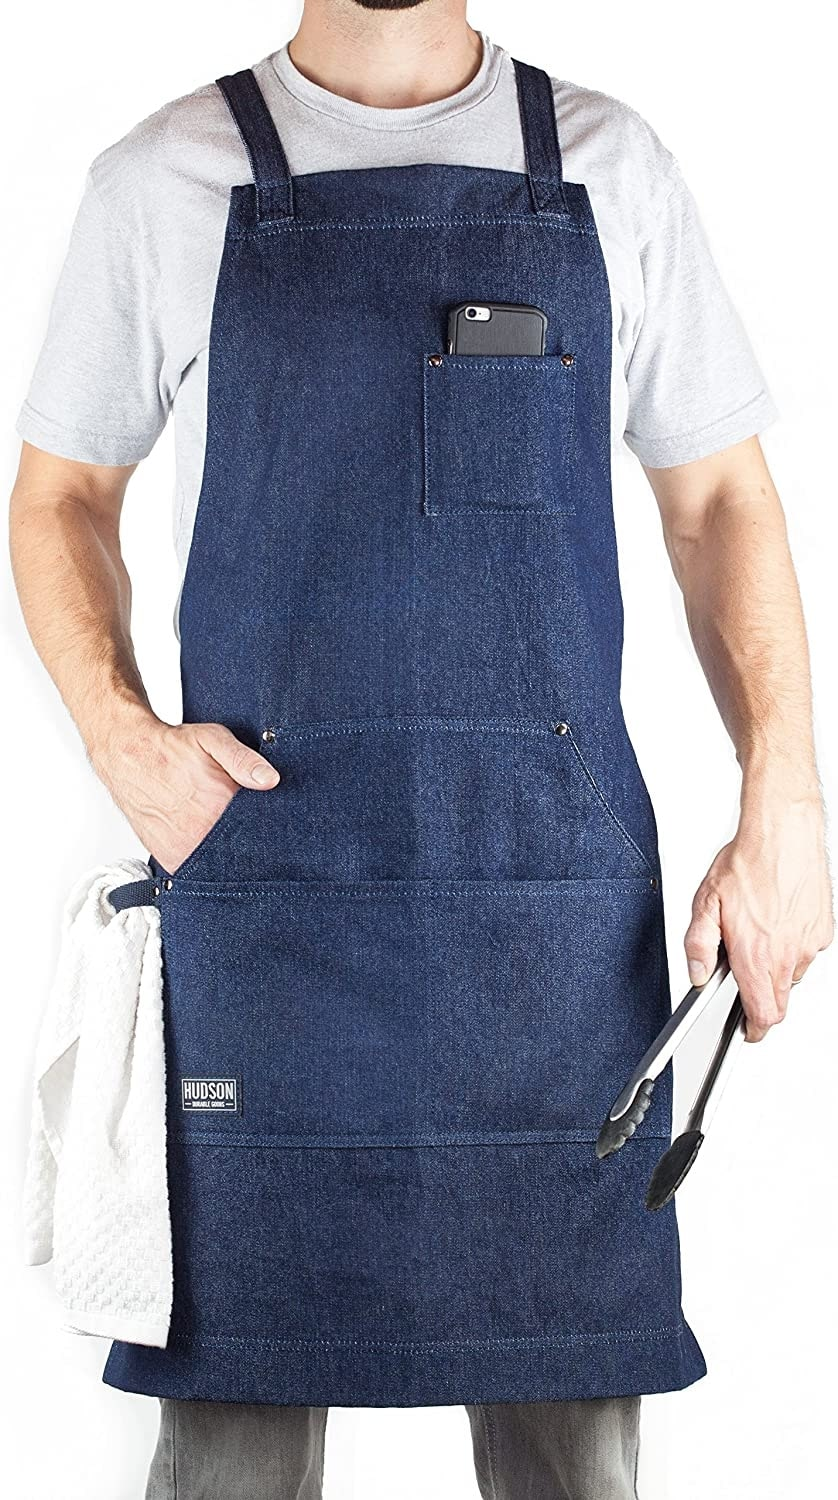 denim-apron-fathers-day-gift-guide.jpg